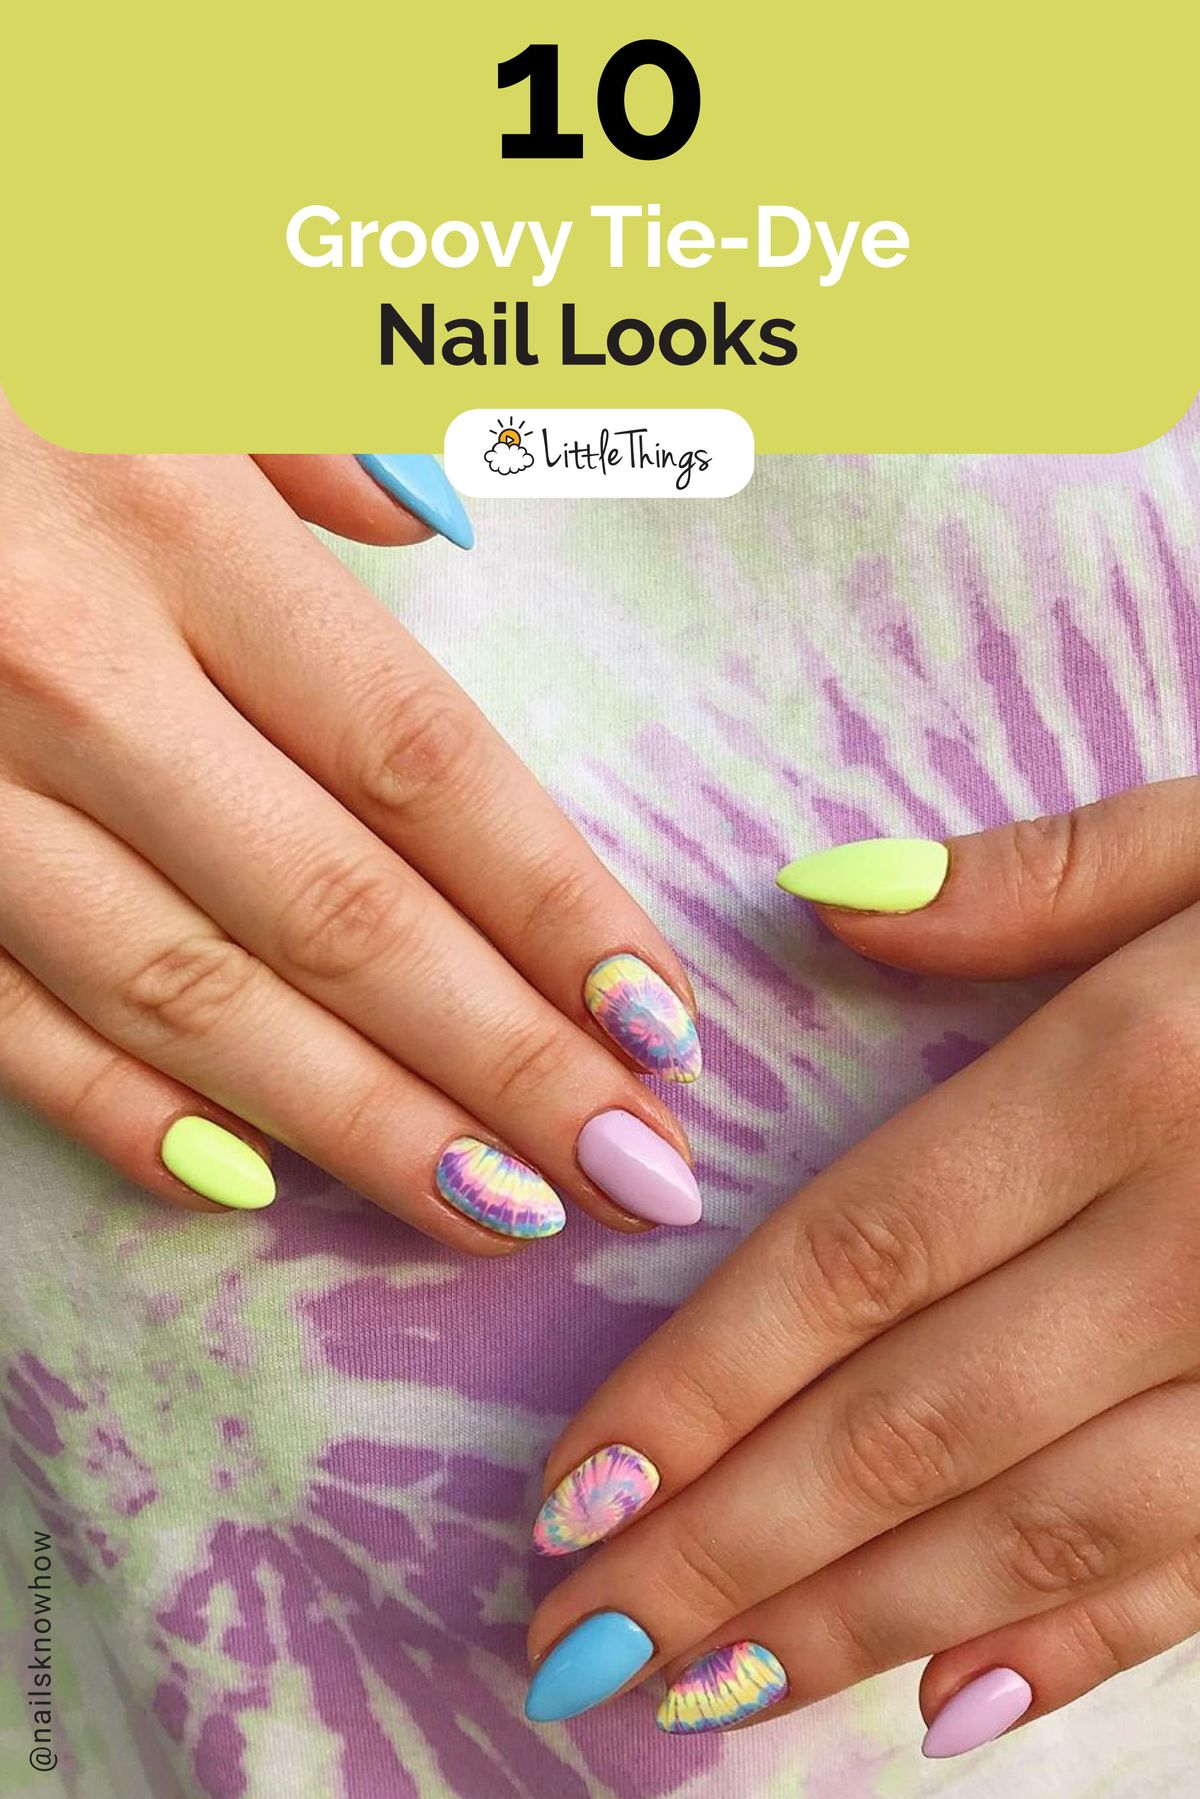 10 Groovy Tie-Dye Nail Looks: While #nails play an important role for women to express their femininity, check out these tie-dye #naildesigns that are becoming trendy amongst #celebrities and will simply make you fall in love with tie-dye all over again.